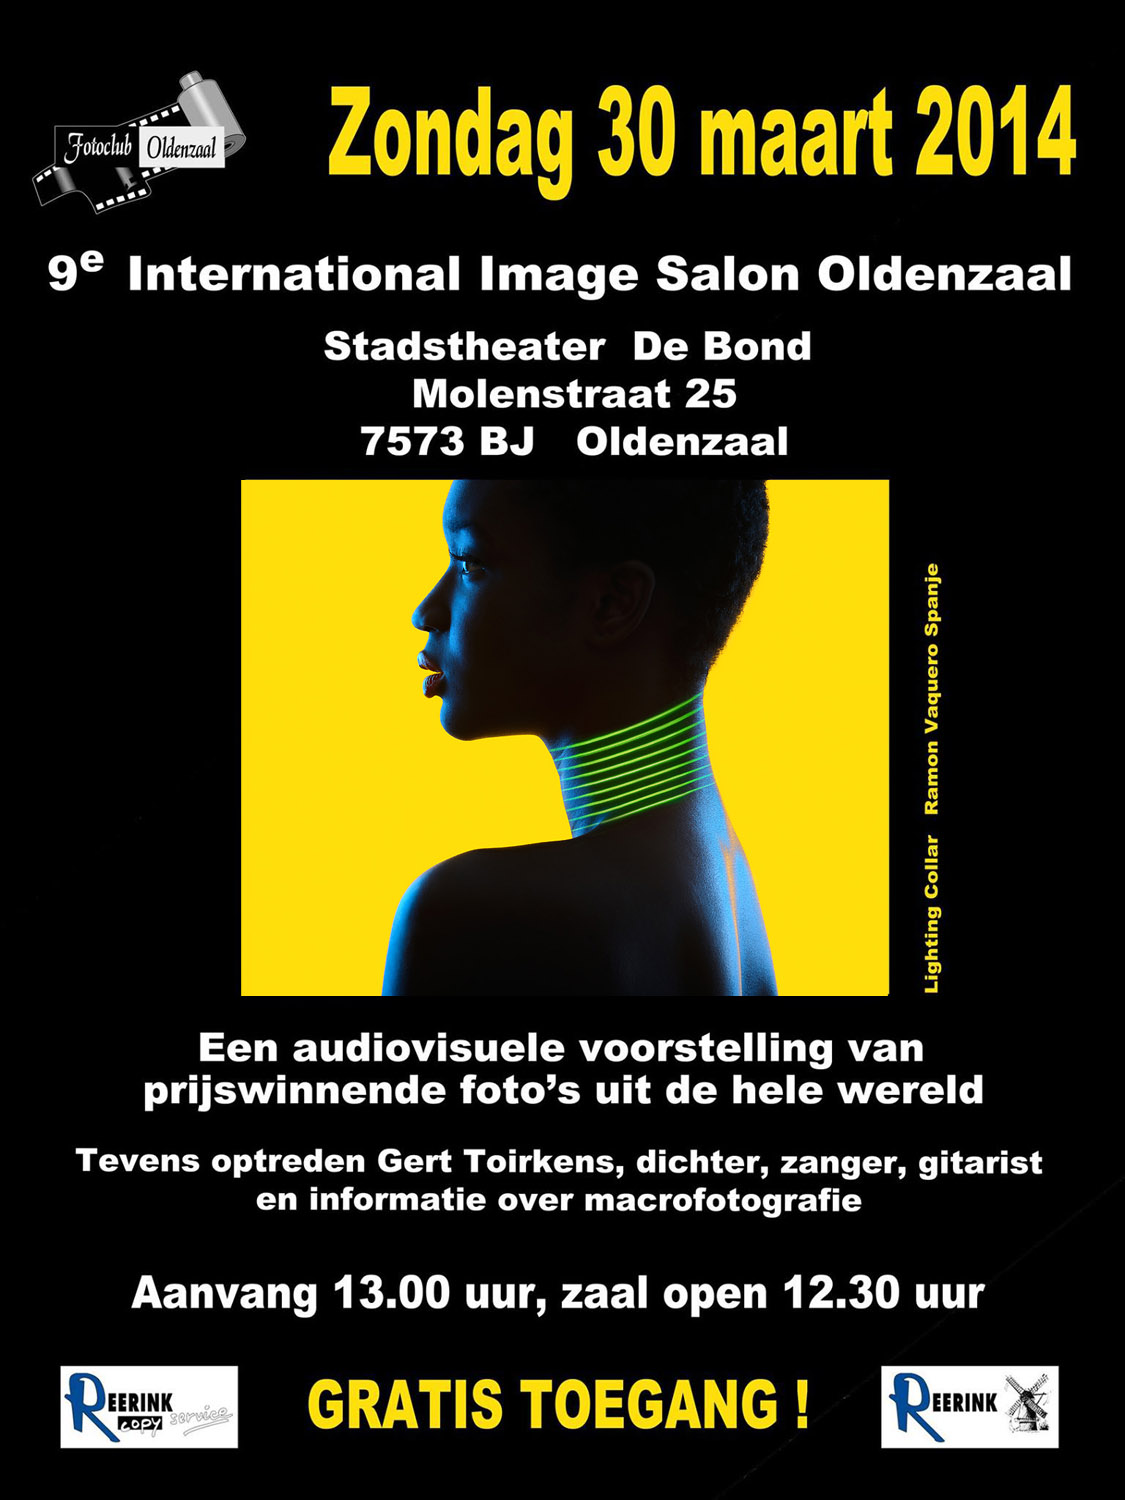 Holland Image Salon Oldenzaal Ramon Vaquero